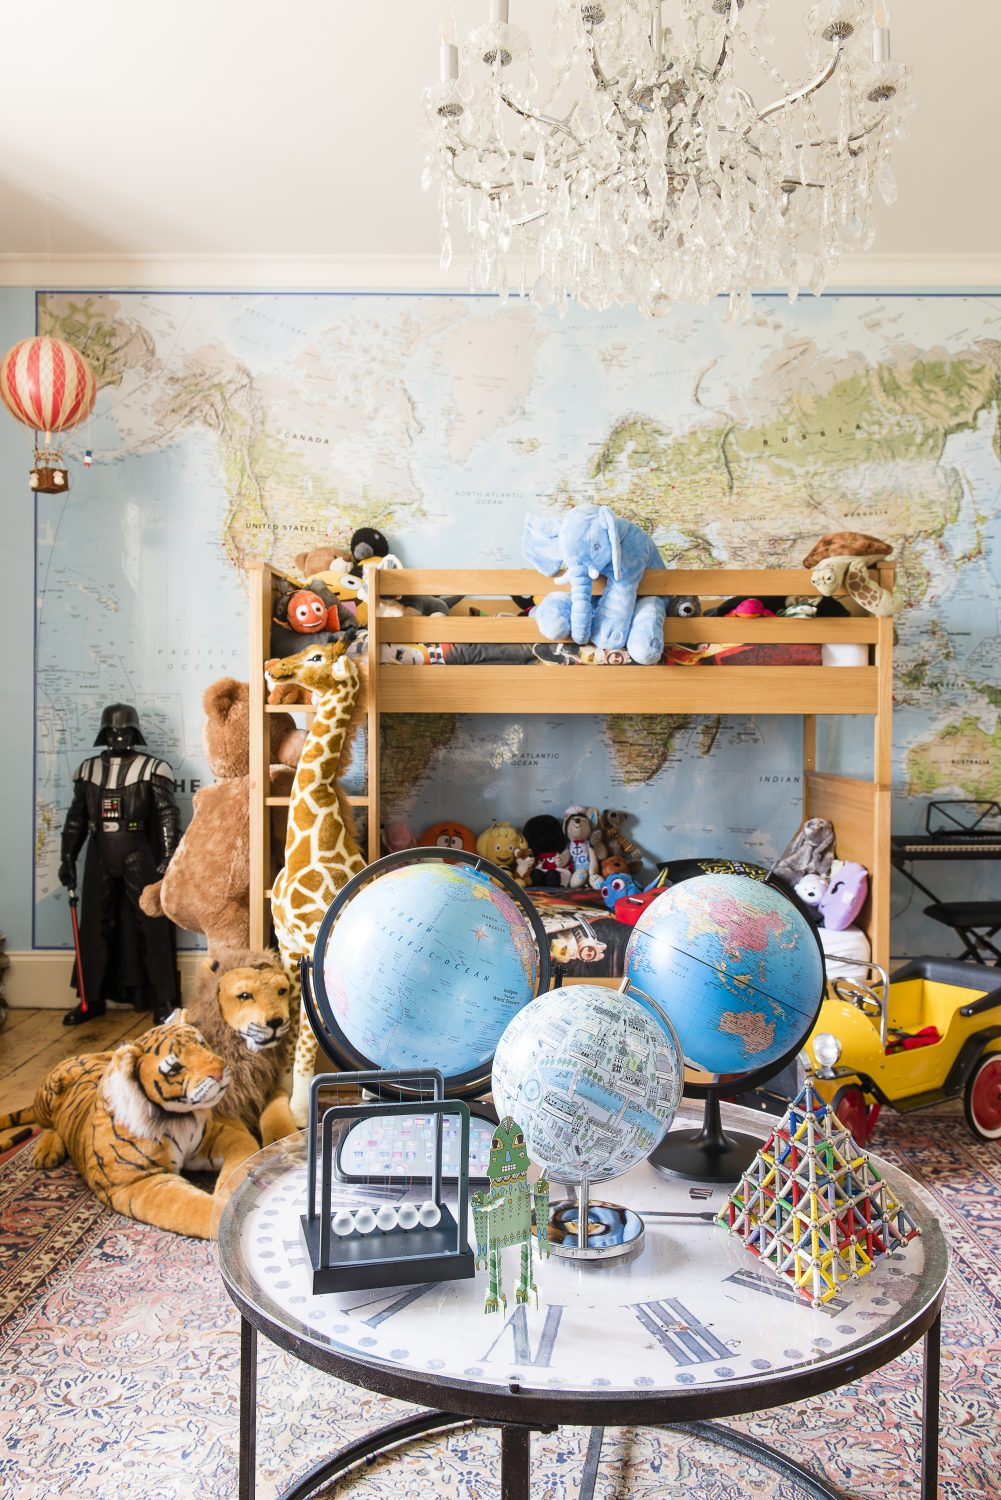 The world map is from Printed Space and the bunkbed is by Great Little Trading Company